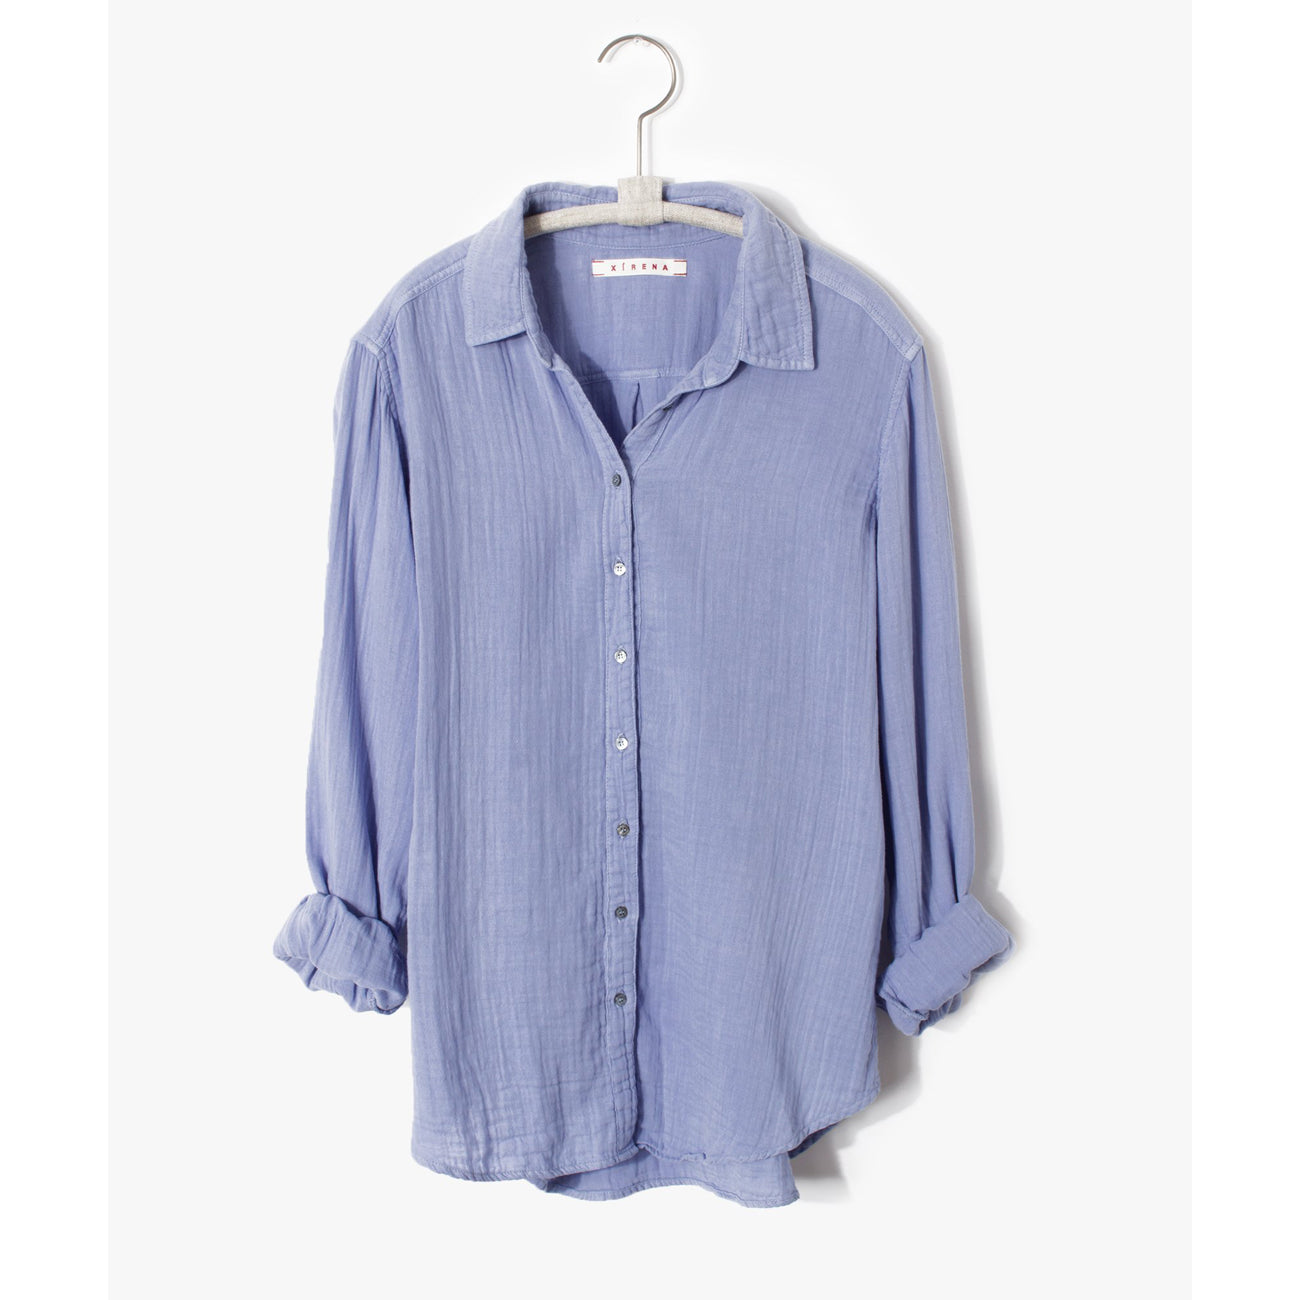 Xirena Scout Shirt in Blue Waters